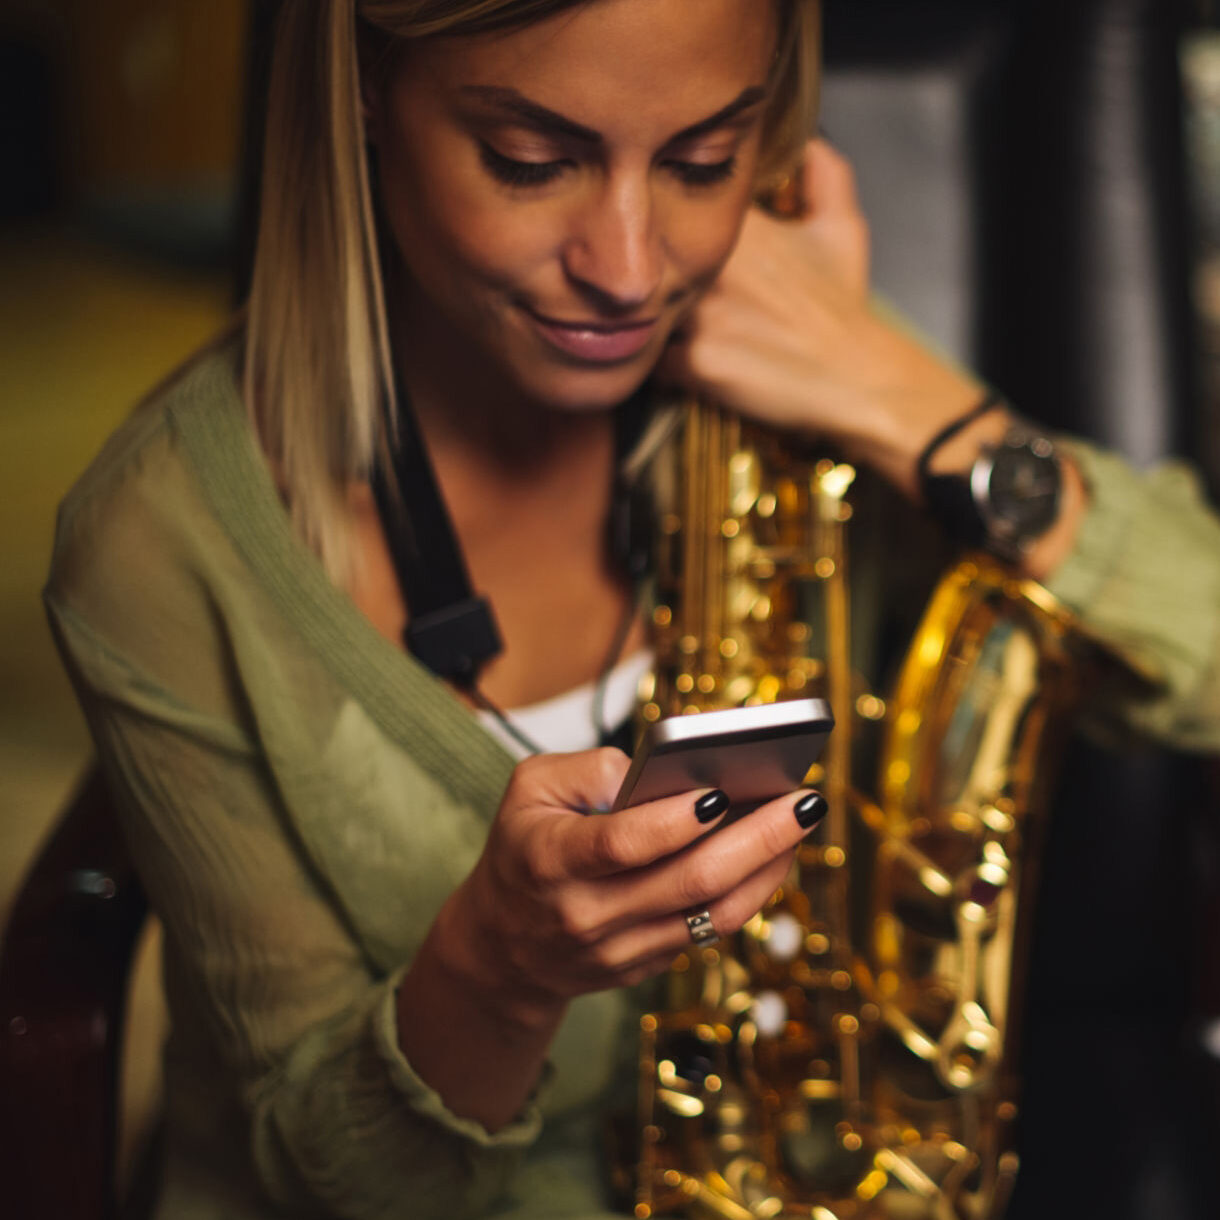 Young female musician checking her phone while practicing in a music studio.